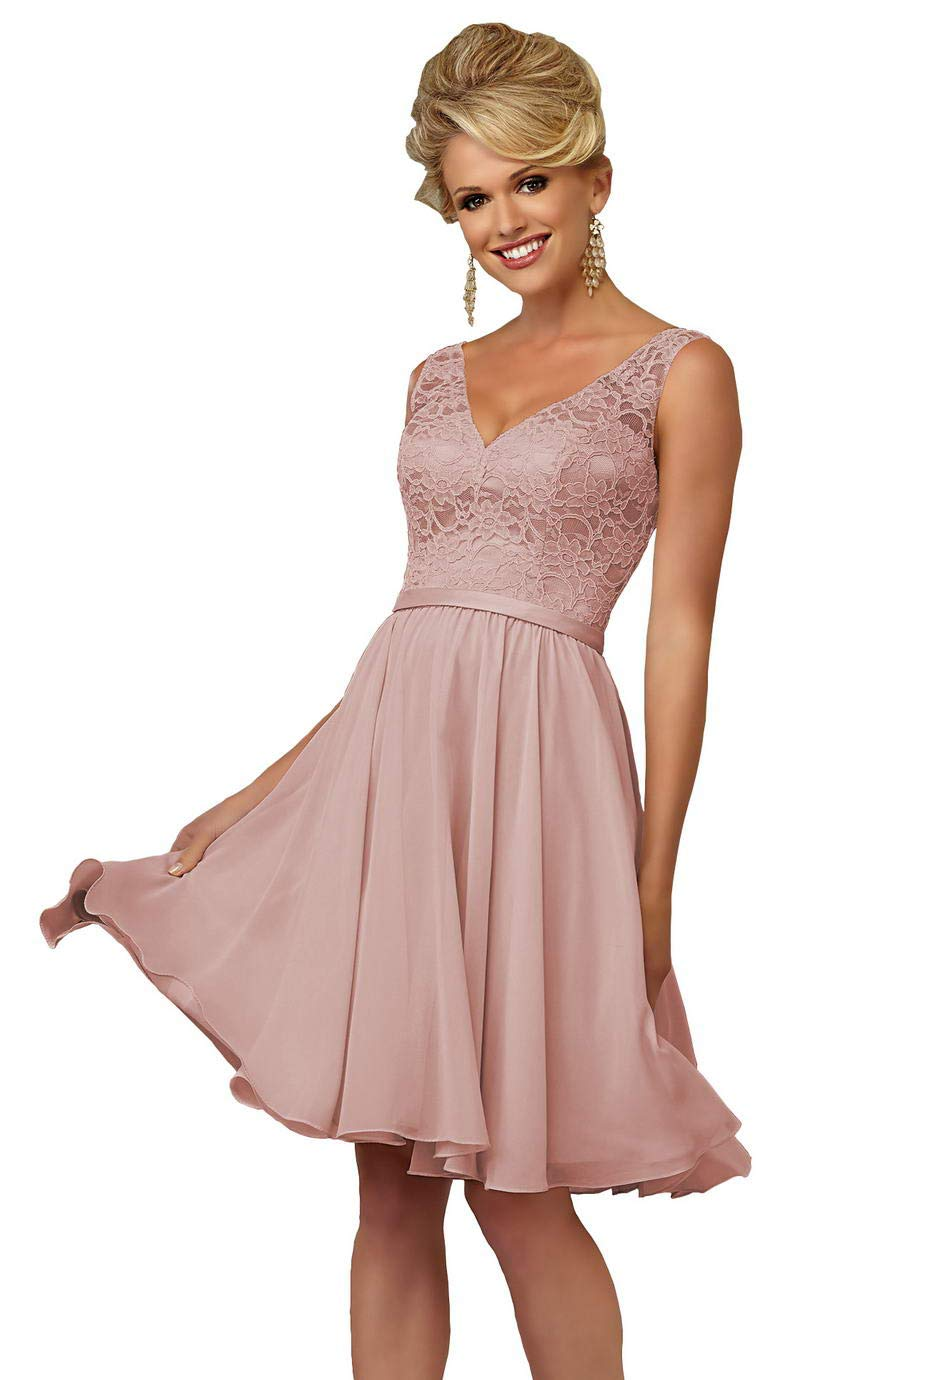 9ca80cc6a903 ... V-Neck Chiffon Bridesmaid Dress Short Formal Evening Party Gown Lace  Bodice Size 4 Dusty Rose. ; 